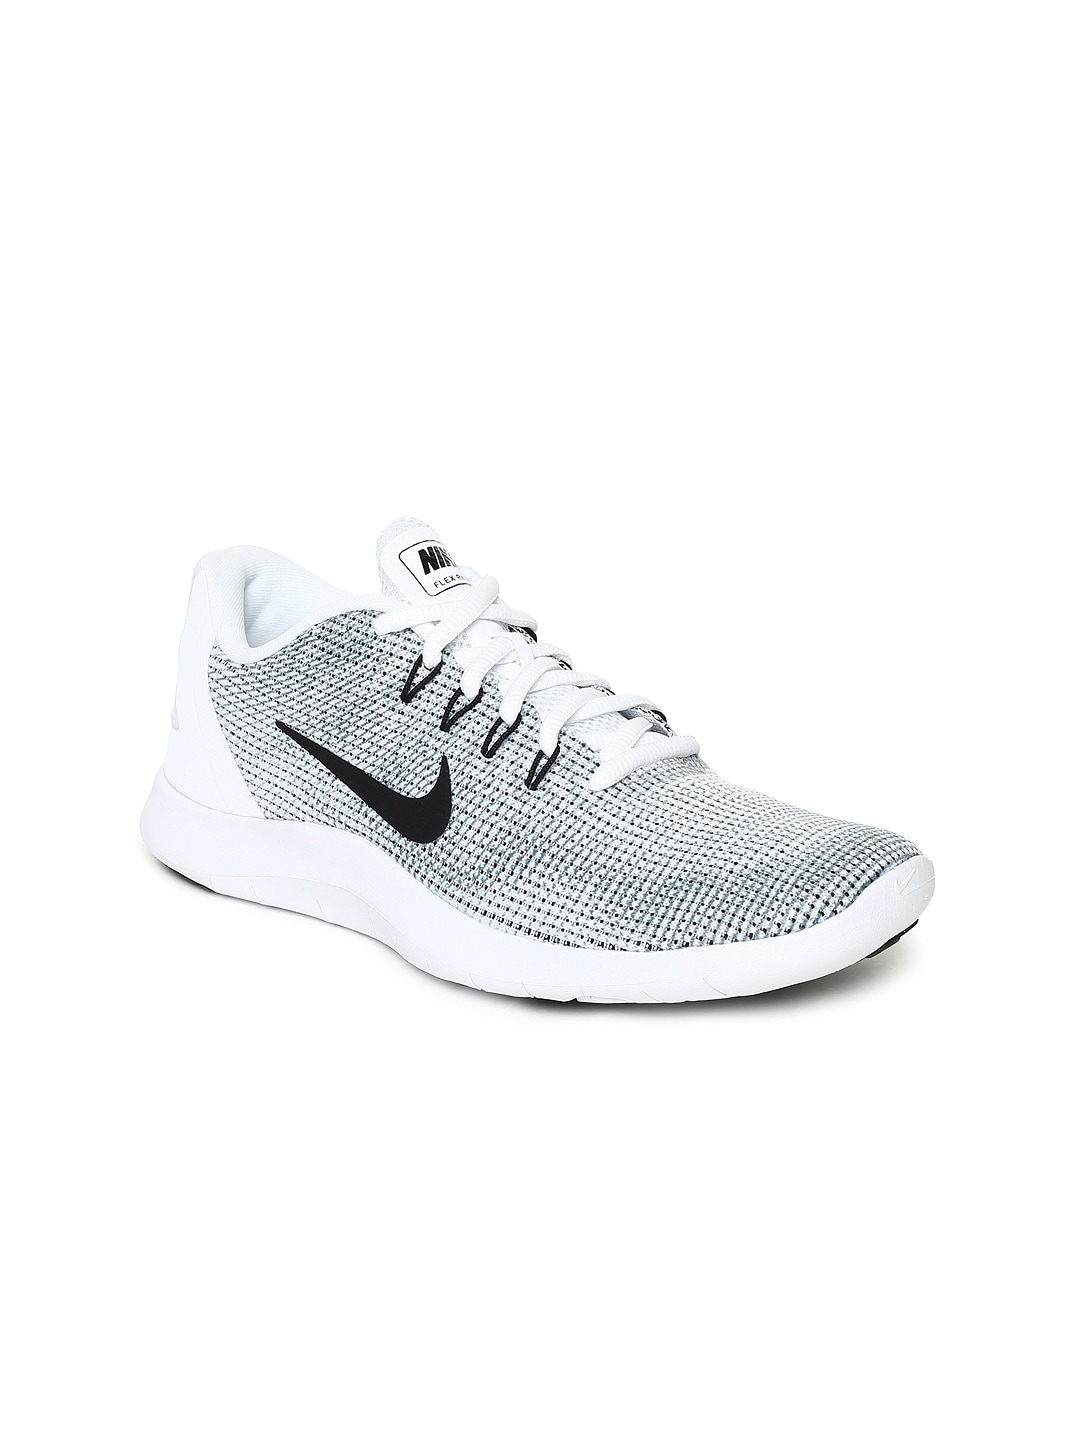 hot sales ba61a 6a374 Women s Nike Shoes - Buy Nike Shoes for Women Online in India